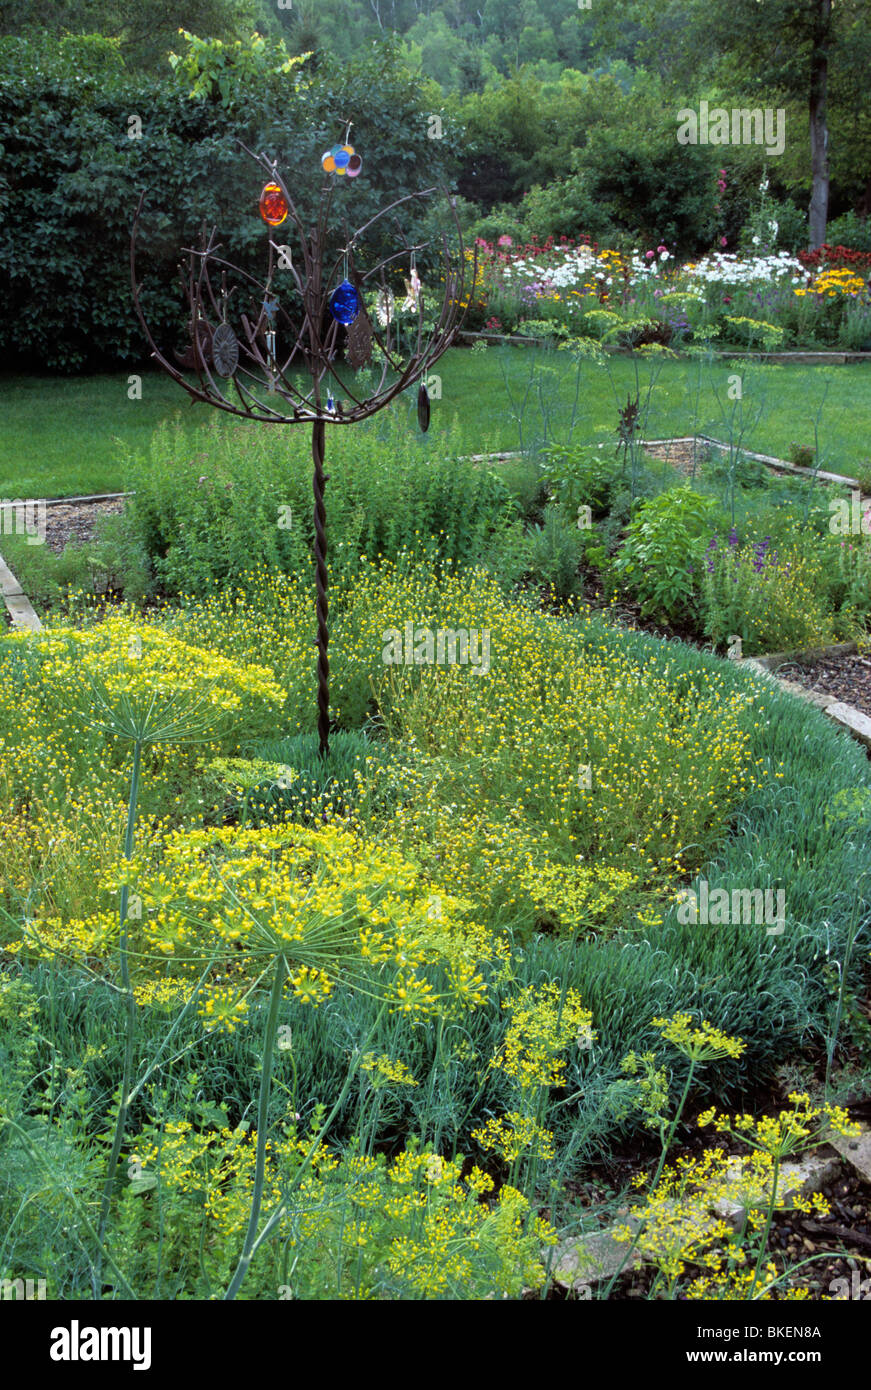 MINNESOTA KITCHEN GARDEN WITH IRON FRIENDSHIP TREE, CHAMOMILE, DILL,  OREGANO, BASIL AND ORNAMENTAL CHIVES.